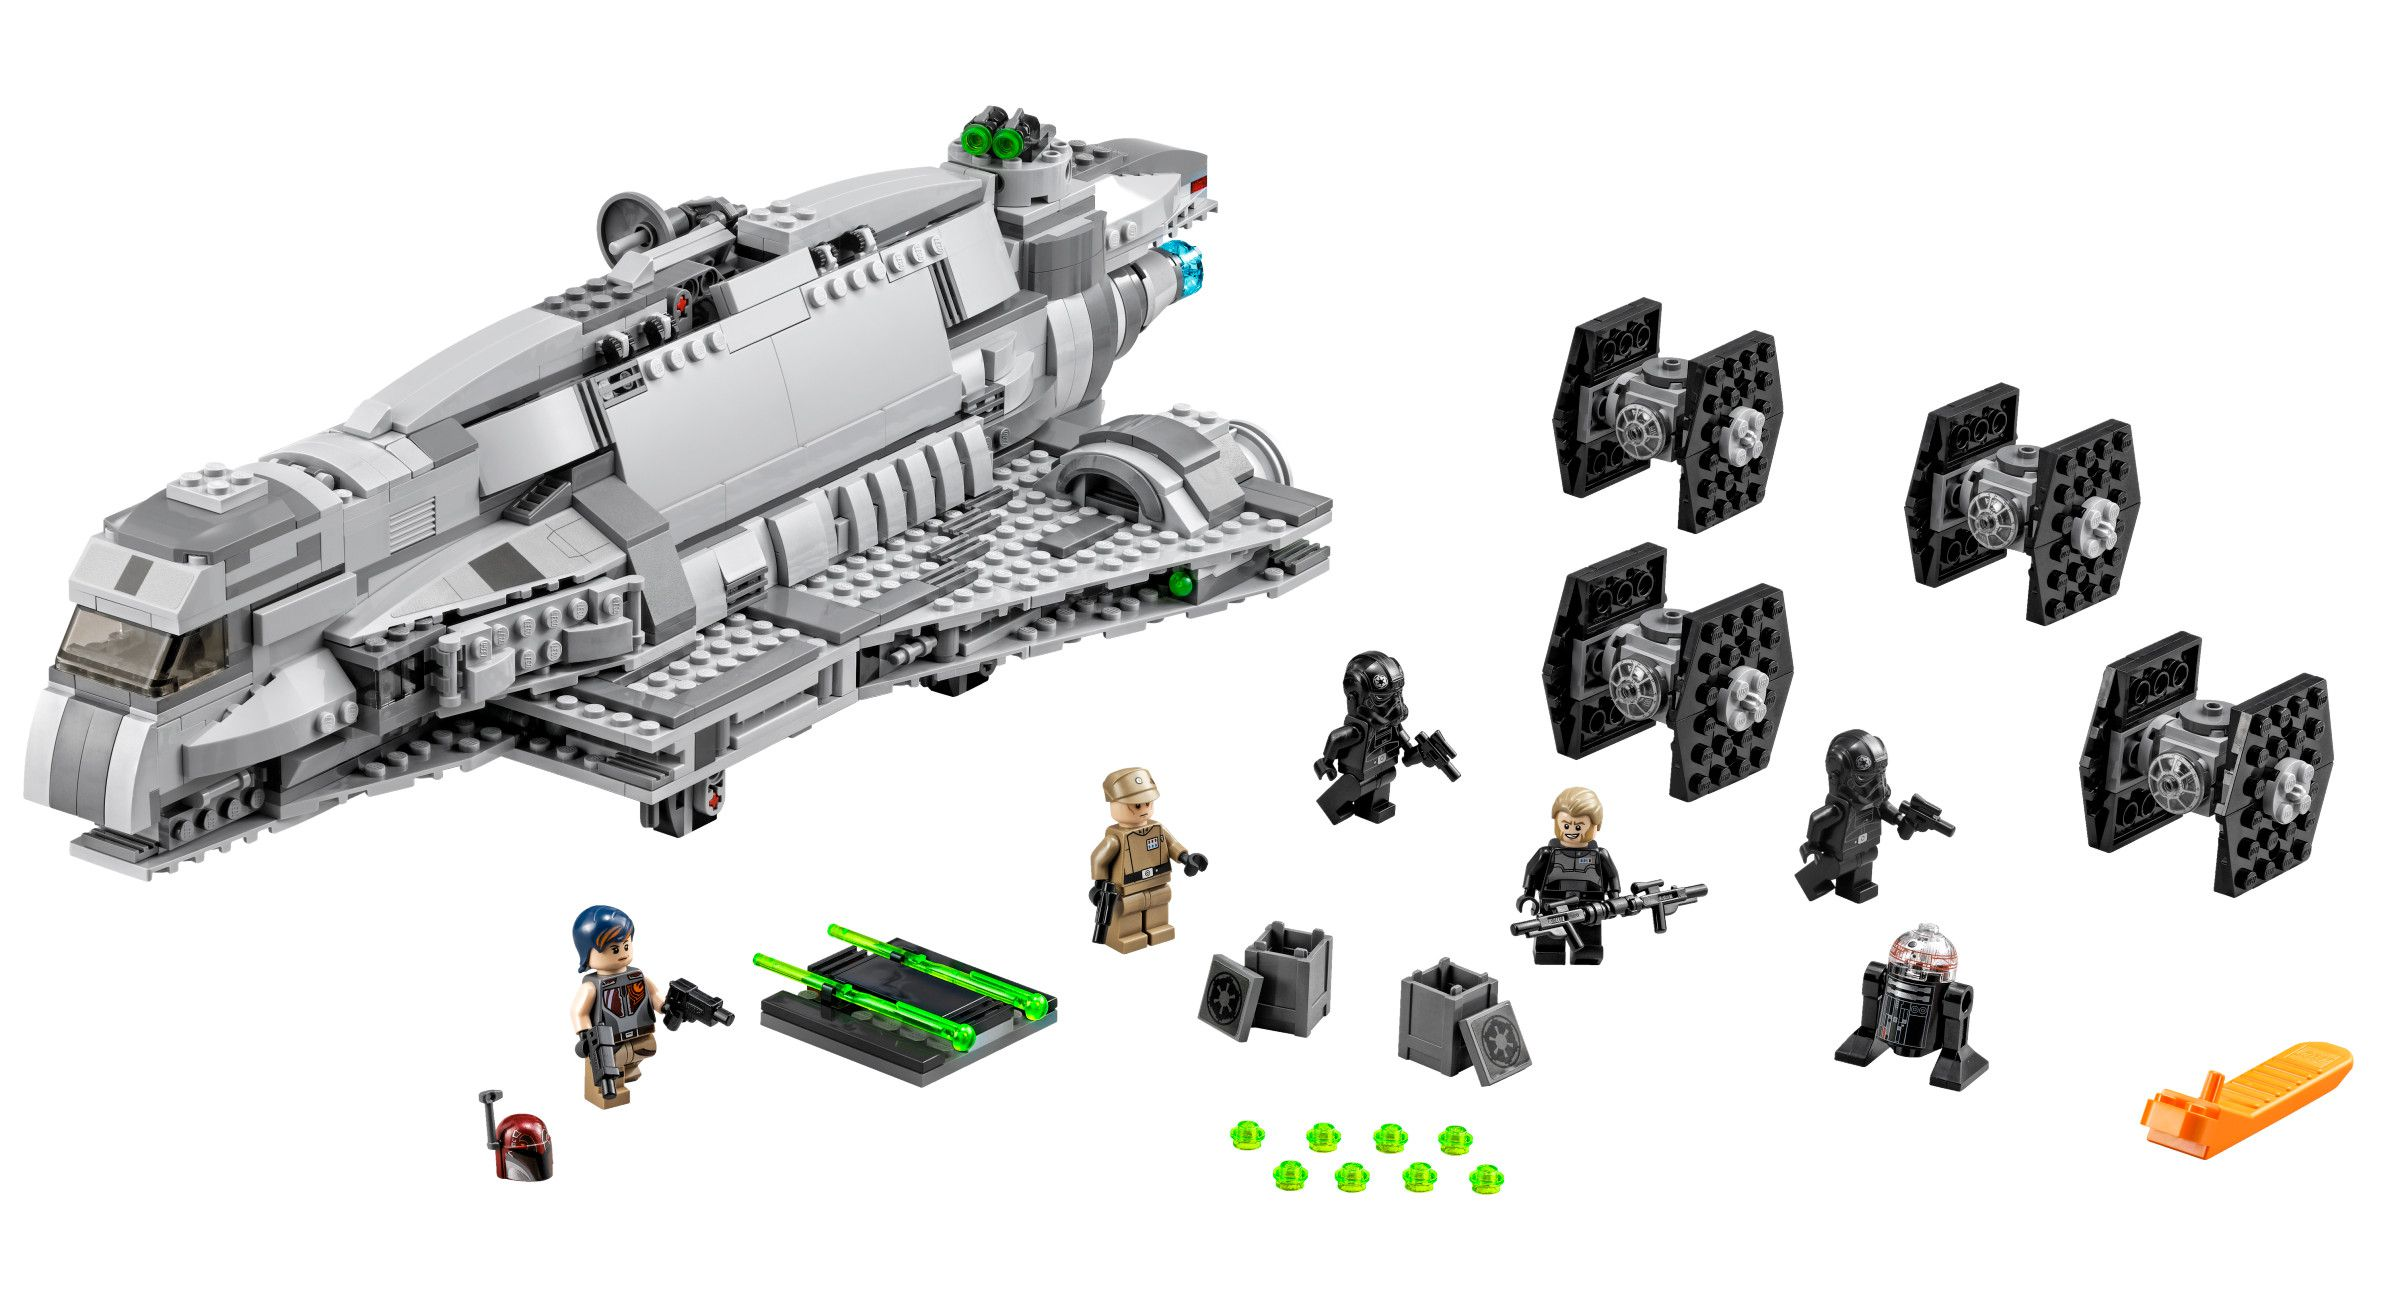 These Star Wars Minifigures Are Sure Fun To Play With moreover Lego Minecraft  her also Star Wars Rogue One Who Is Bistan The Space Monkey 22449334 in addition Rogue One A Star Wars 924515 also Products. on old cargo ship lego sets